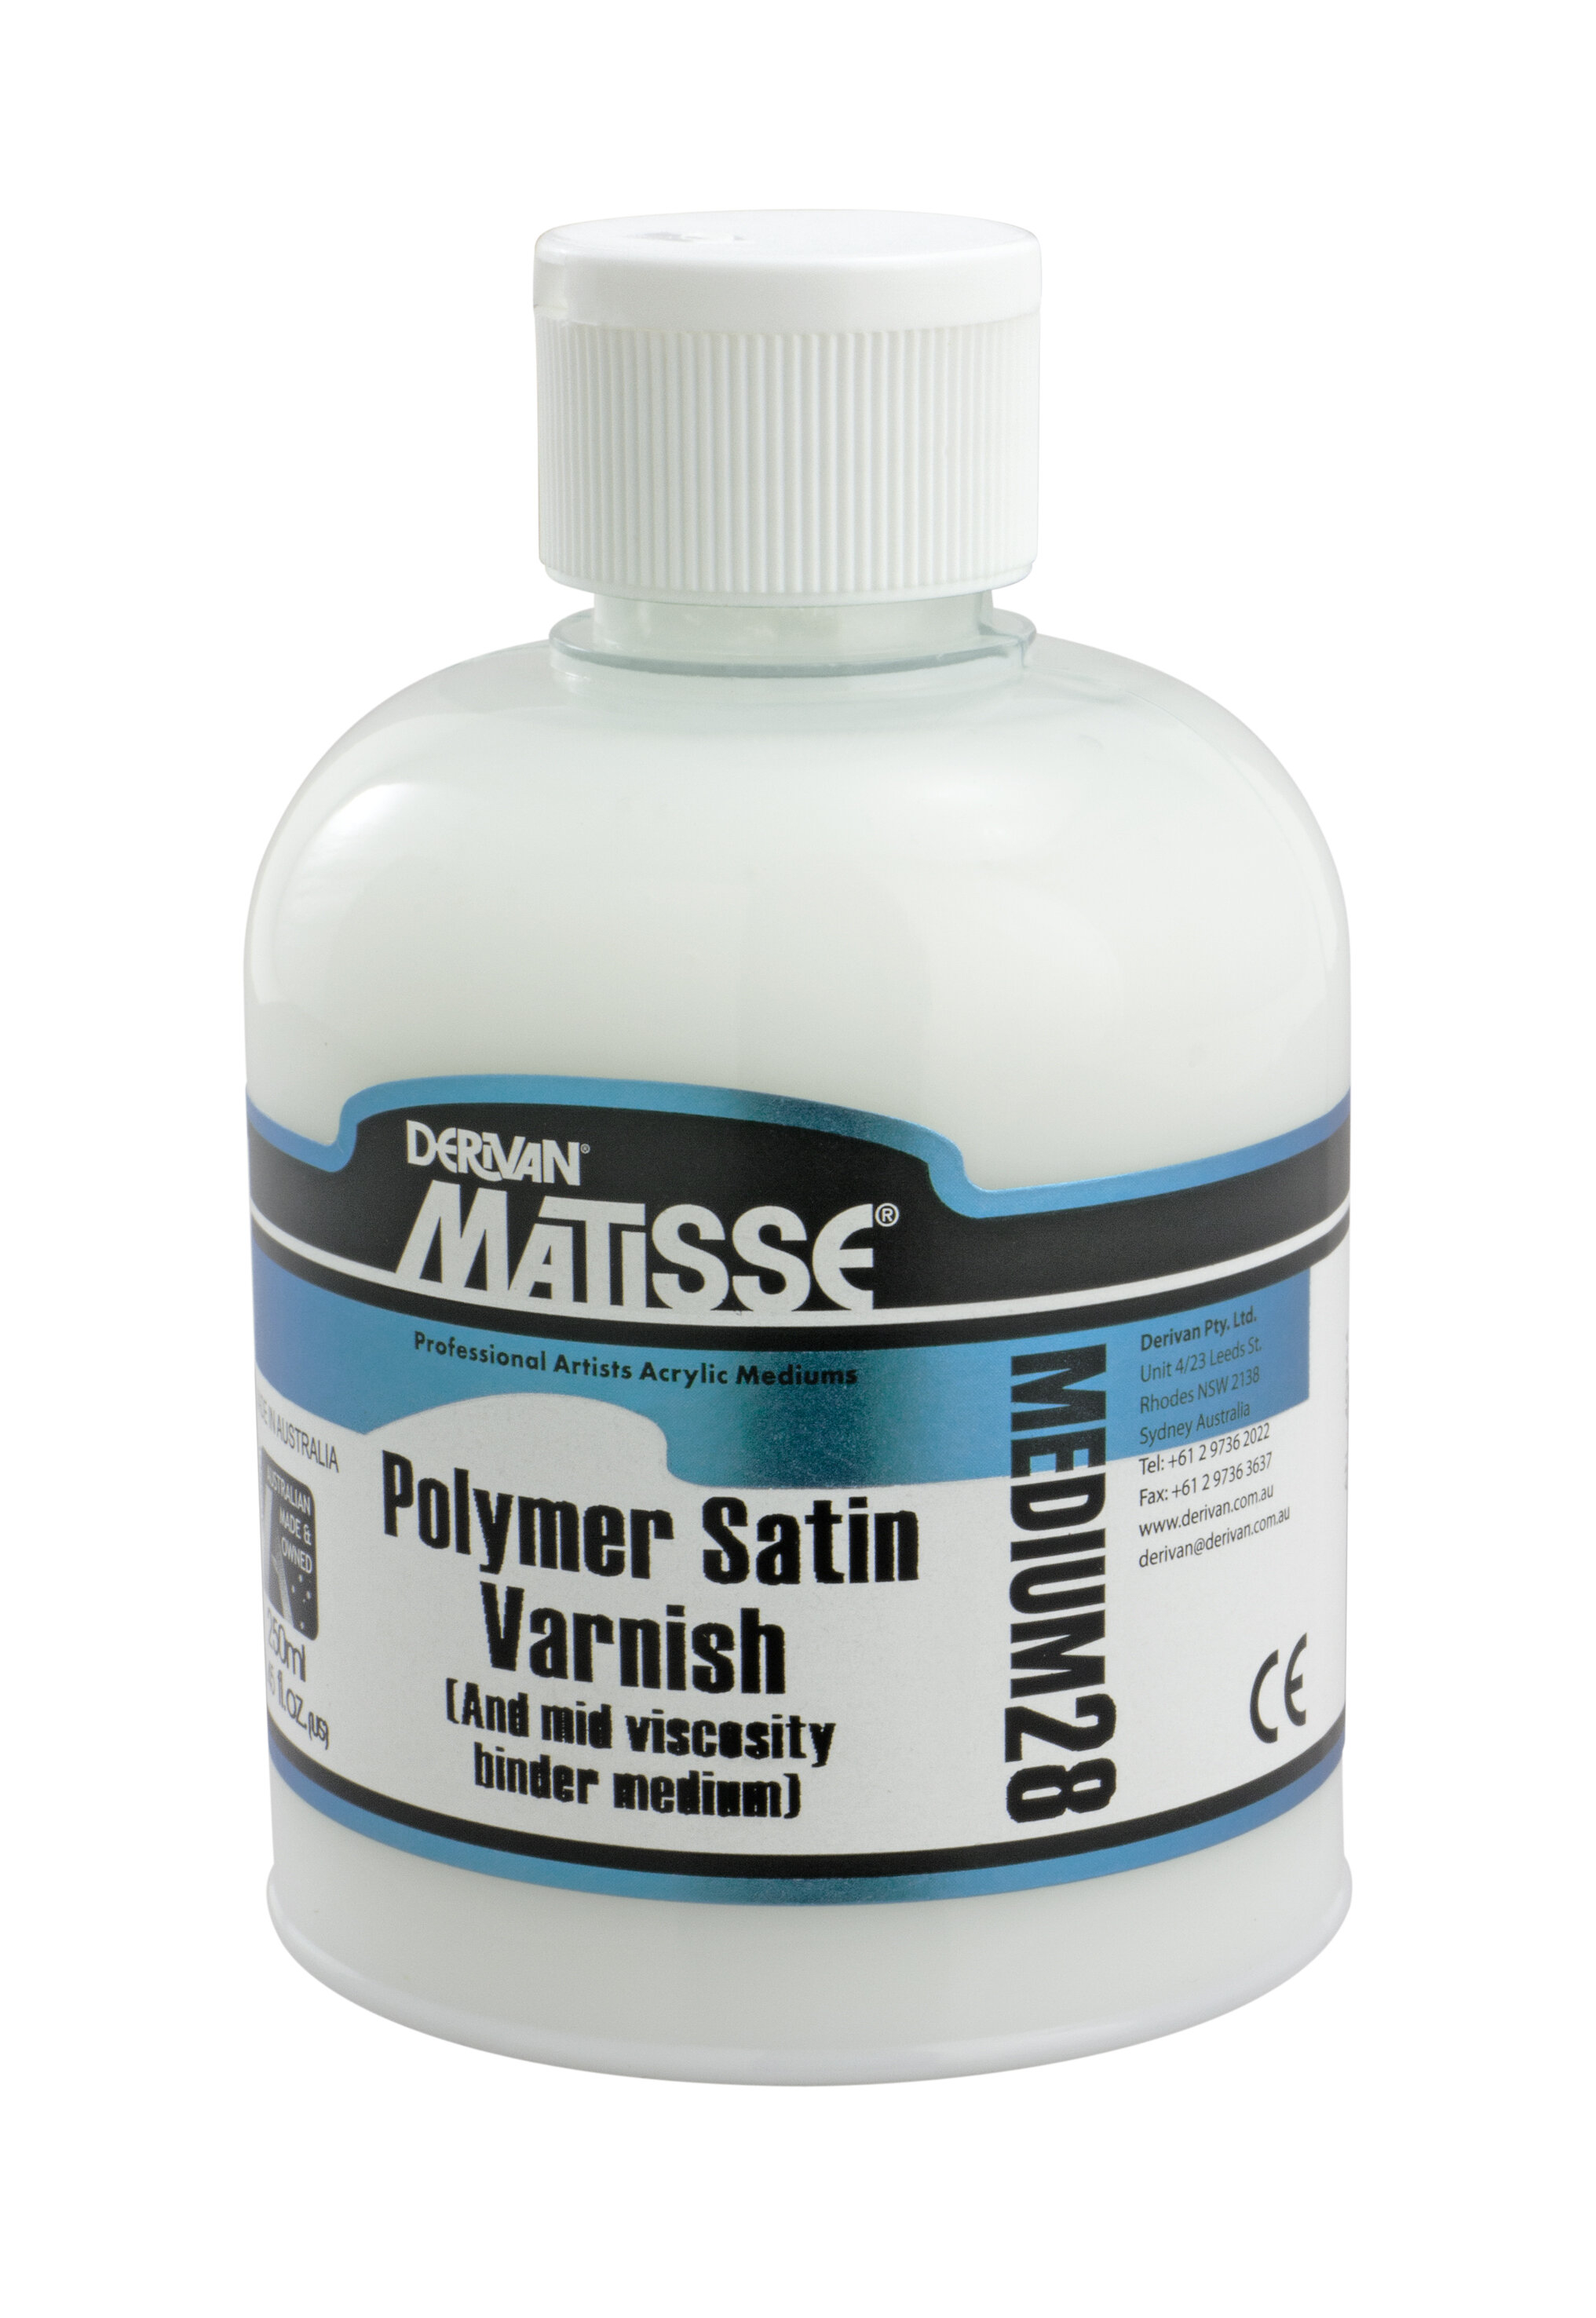 MM28 Polymer Satin Varnish - ———————Use as a final varnish or can be mixed with Matisse Colours. Non-yellowing satin finish.